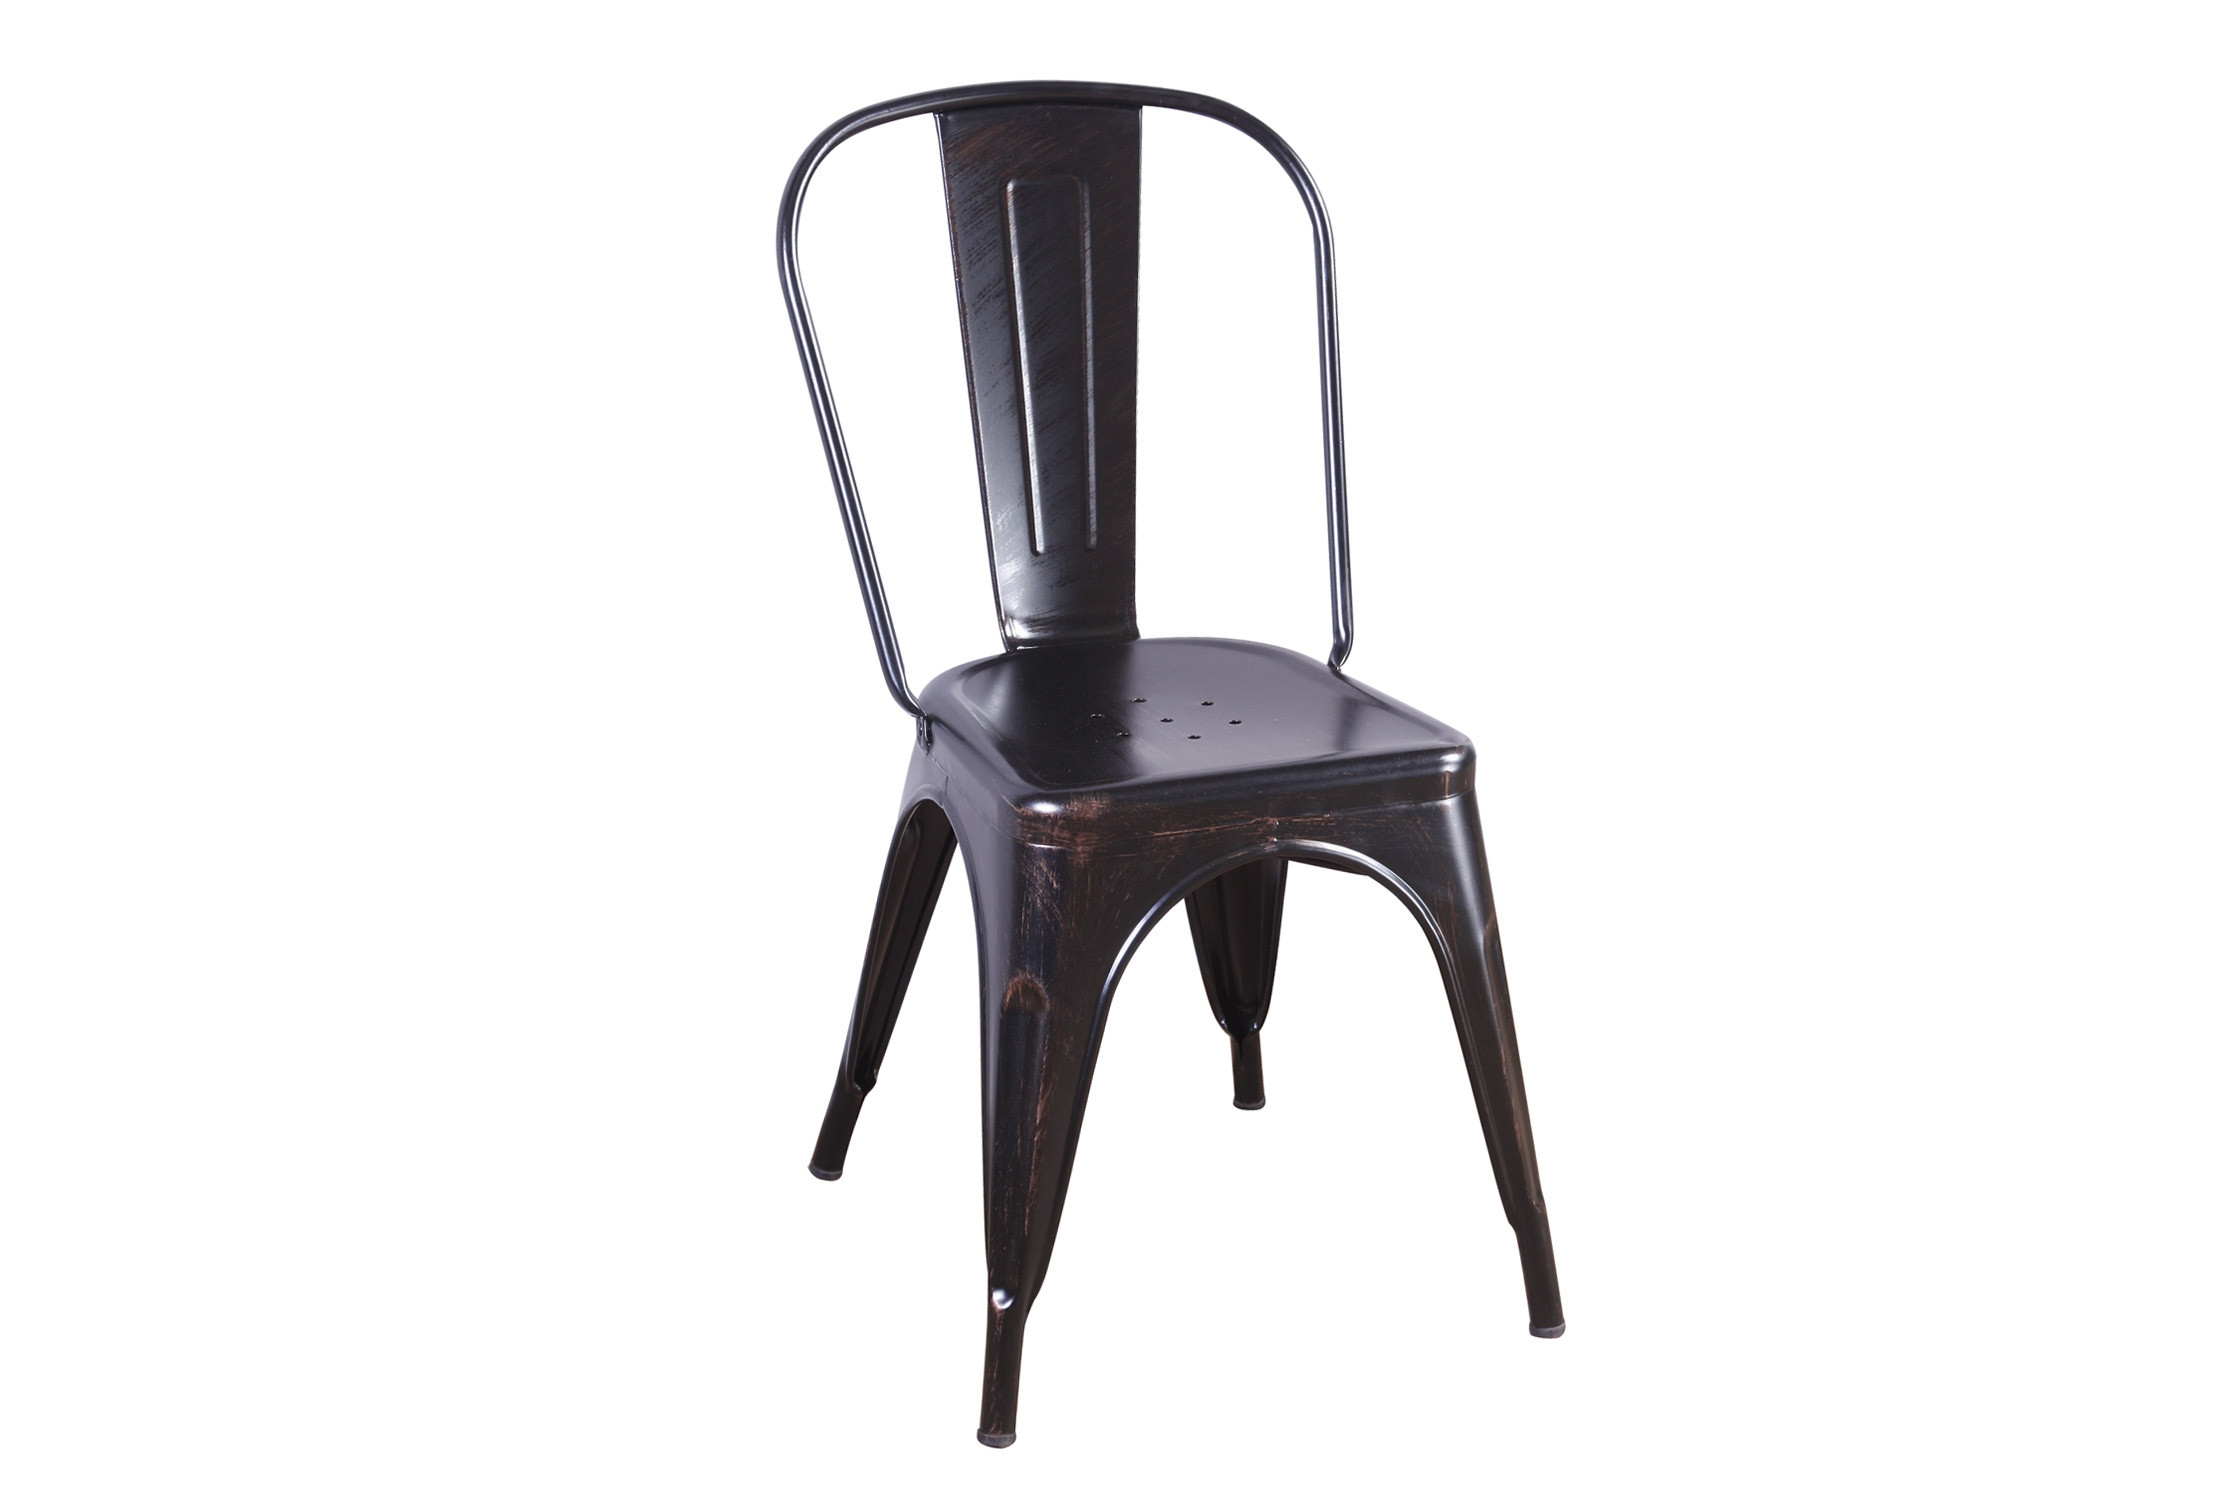 CHAISE LANK OLD NOIRE